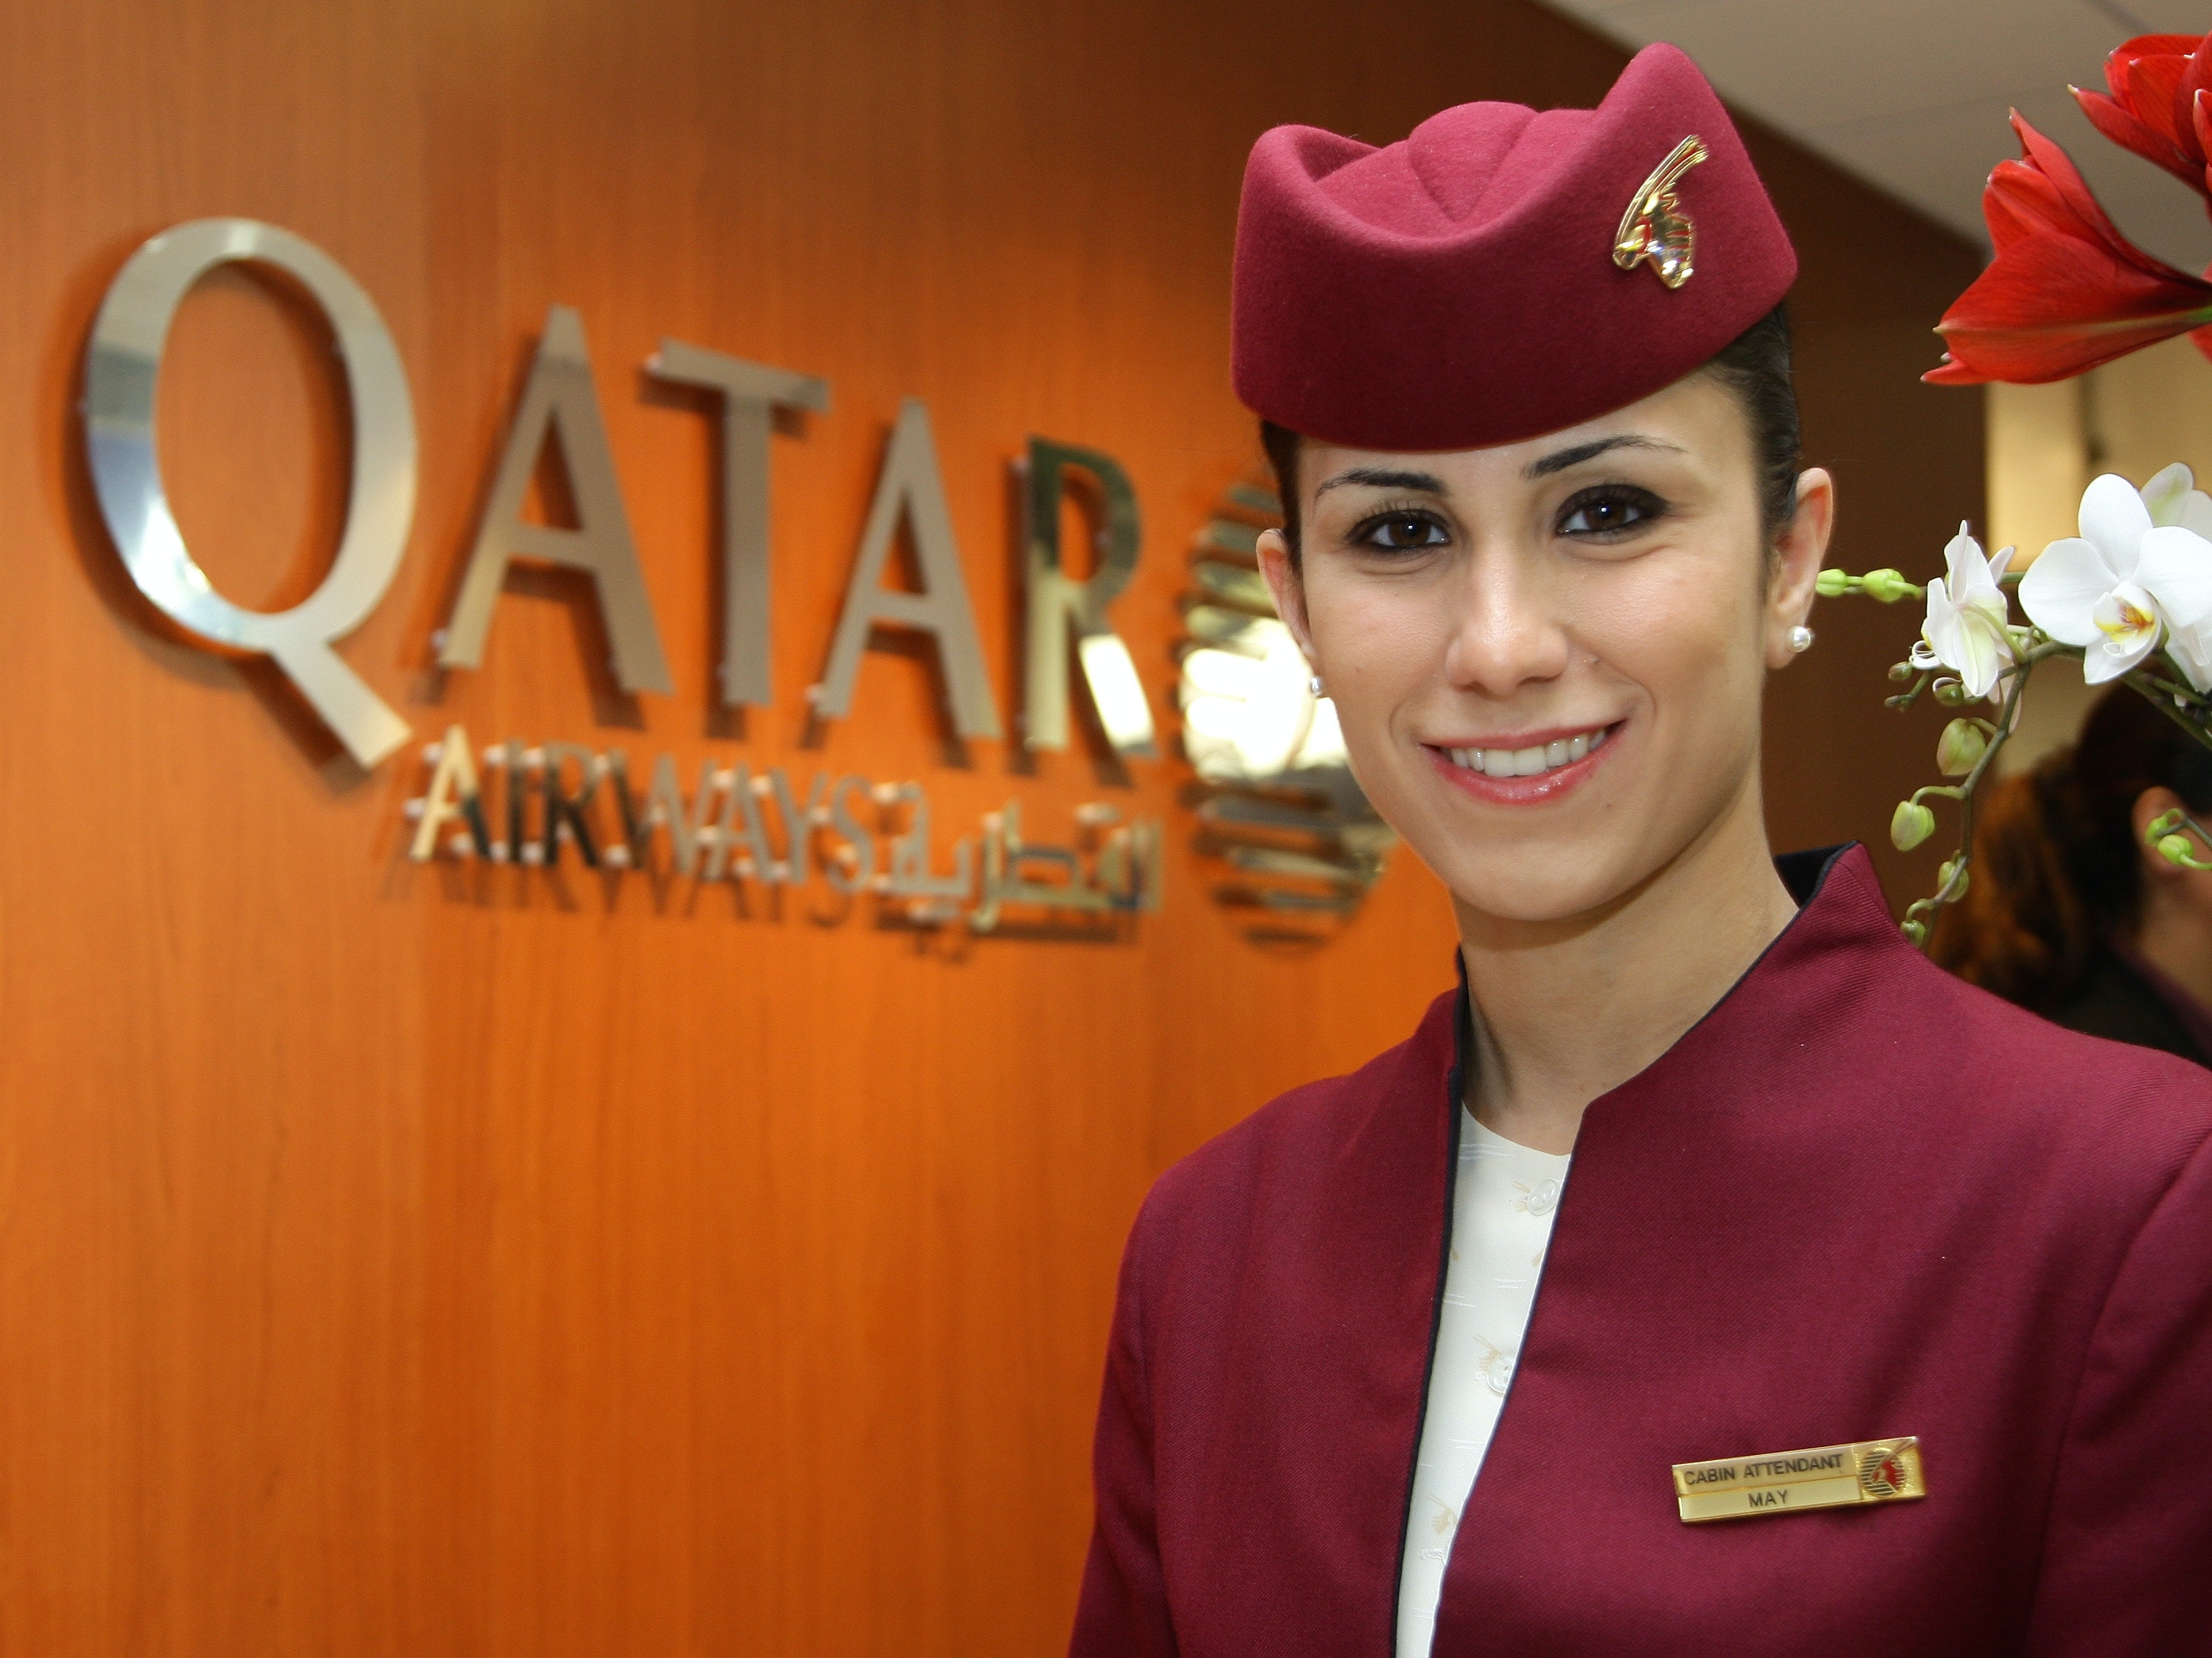 qatar airways female flight attendant policies are completely qatar airways female flight attendant policies are completely insane and outdated